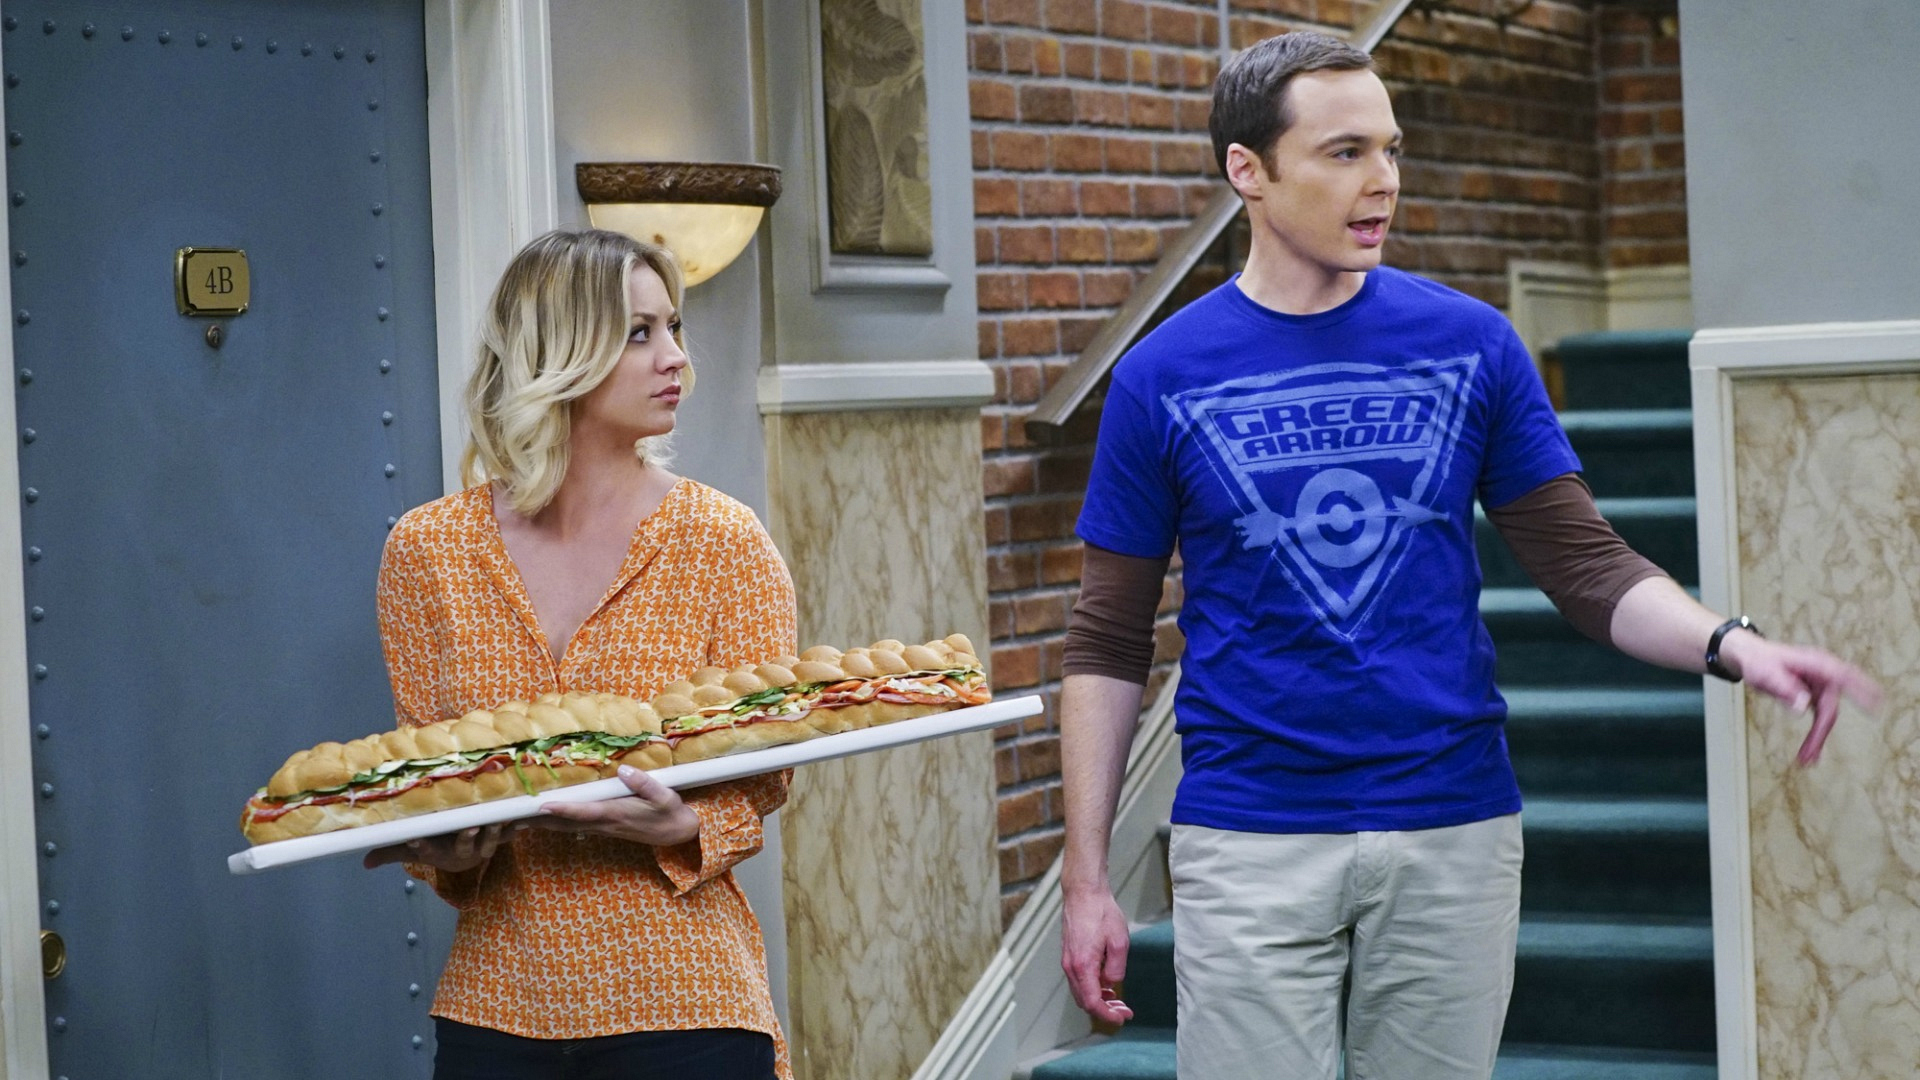 Sheldon and Penny take their large sandwich and storm across the hall.